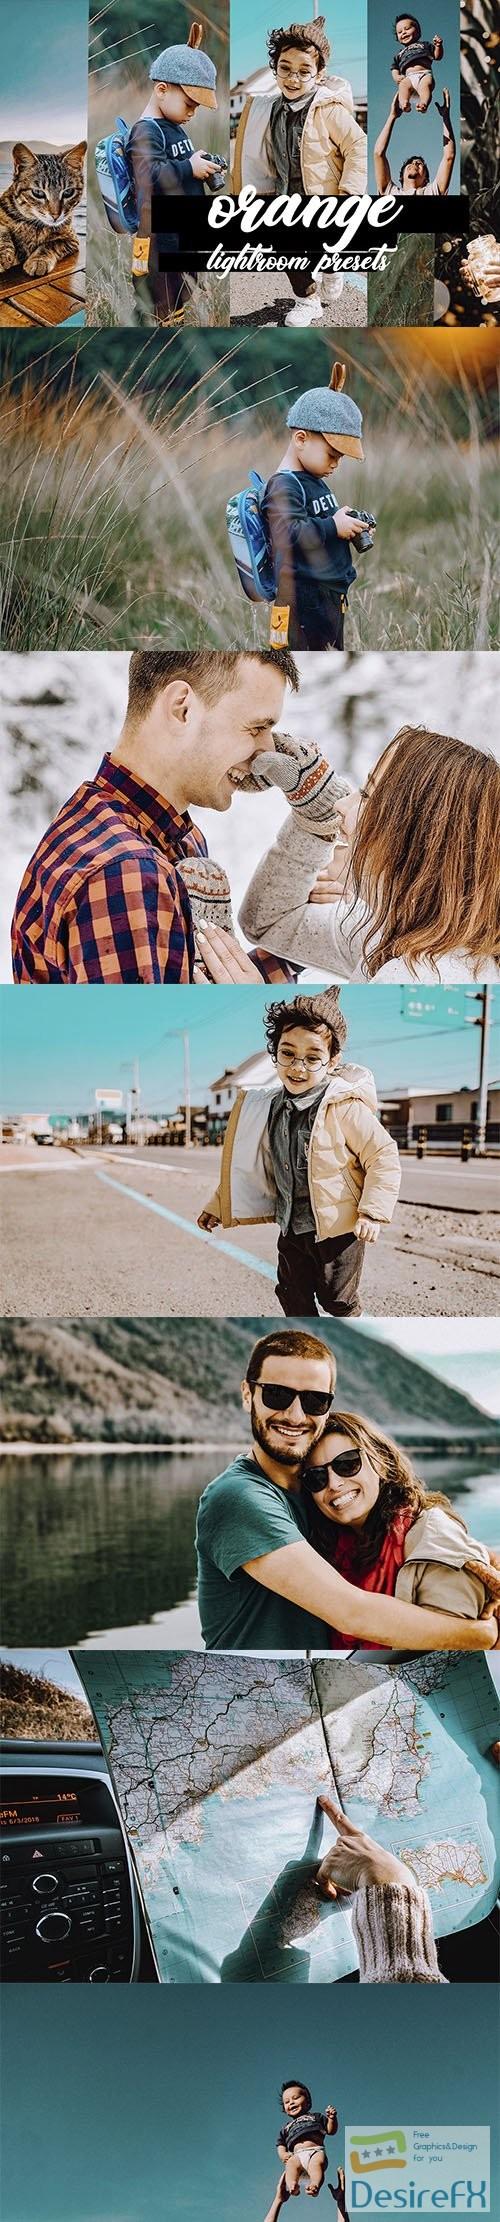 photoshop - ORANGE LR PRESETS 3686585